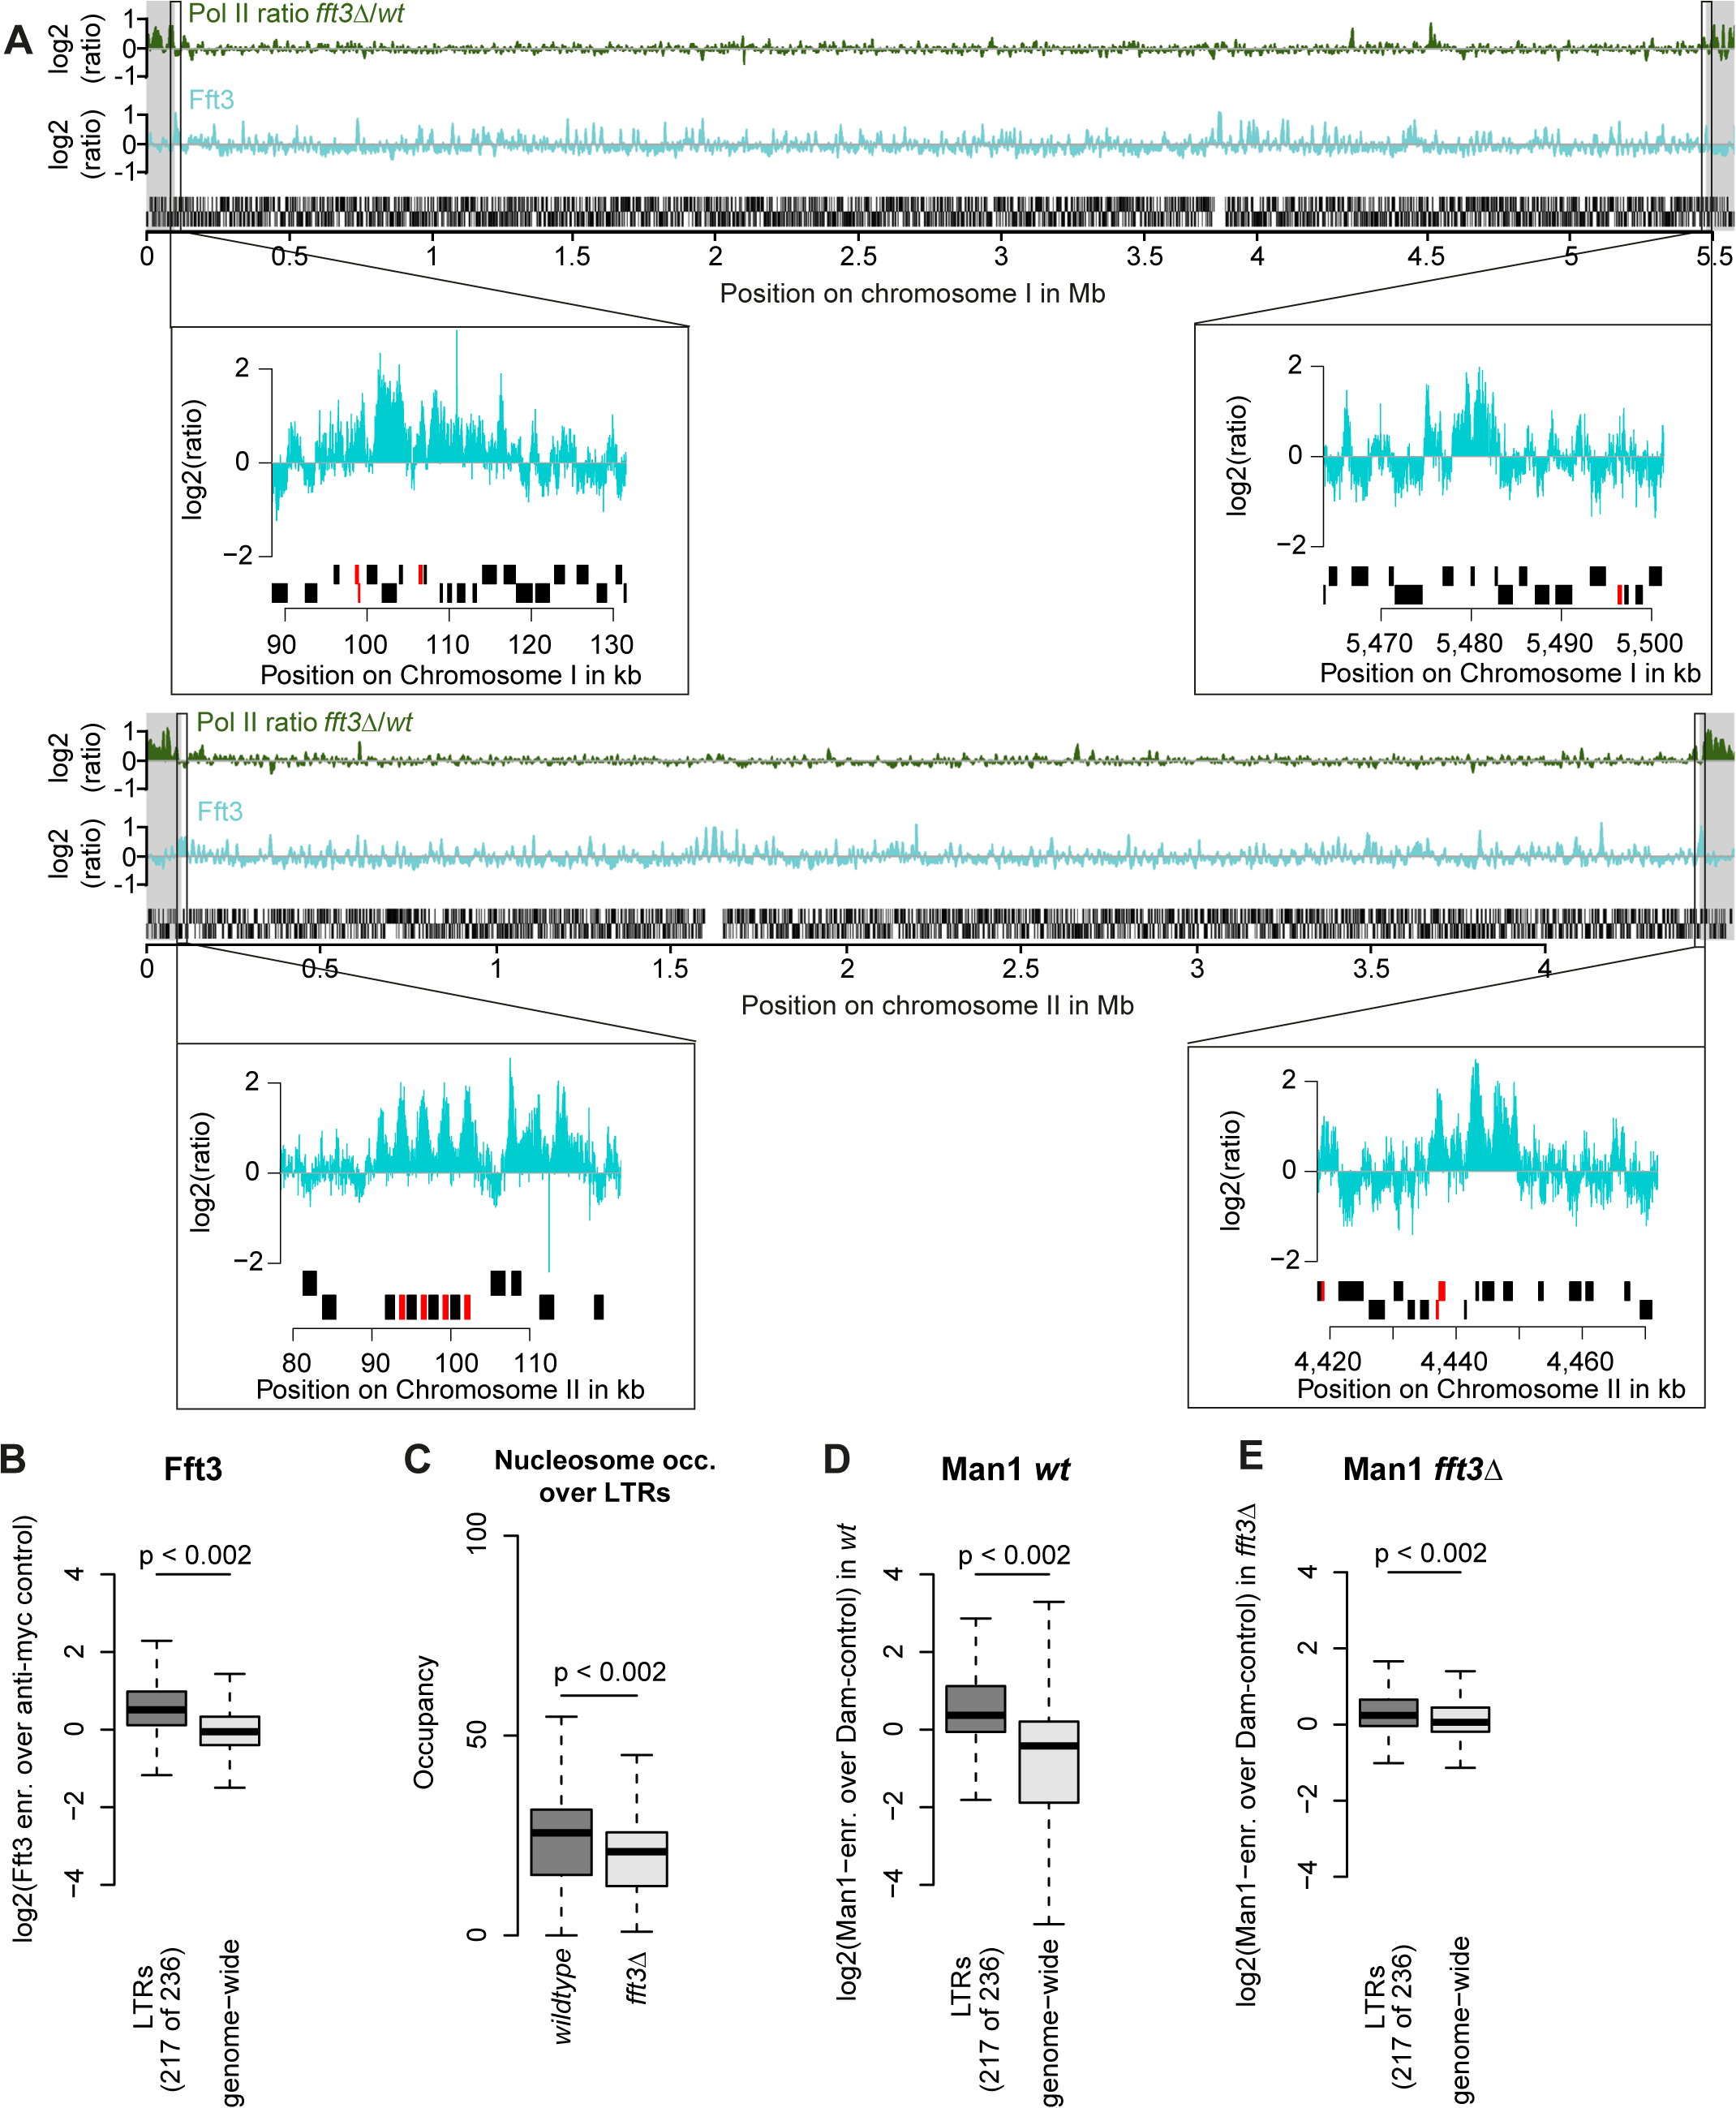 Fft3 binds LTR elements at subtelomeric borders and genome-wide, affecting nucleosome occupancy and peripheral positioning.